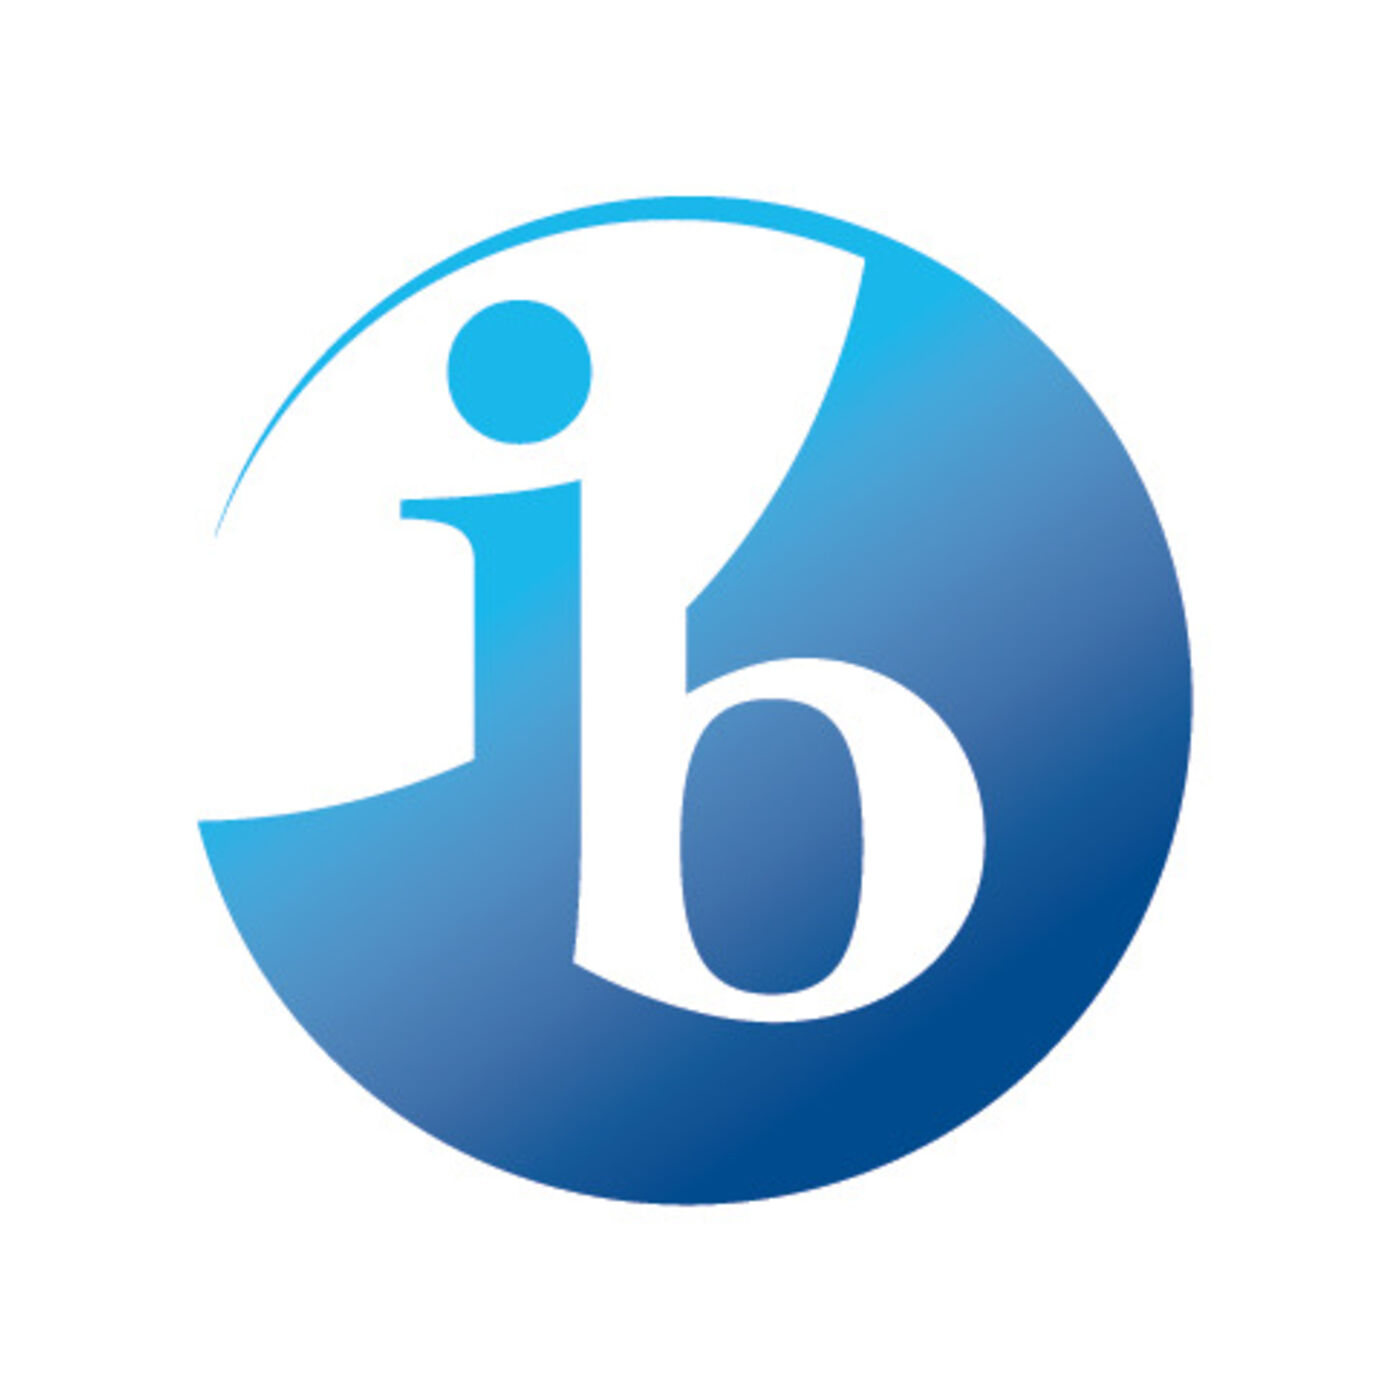 Becoming an IB School - Episode 4 - A new to IB teacher & More parent questions